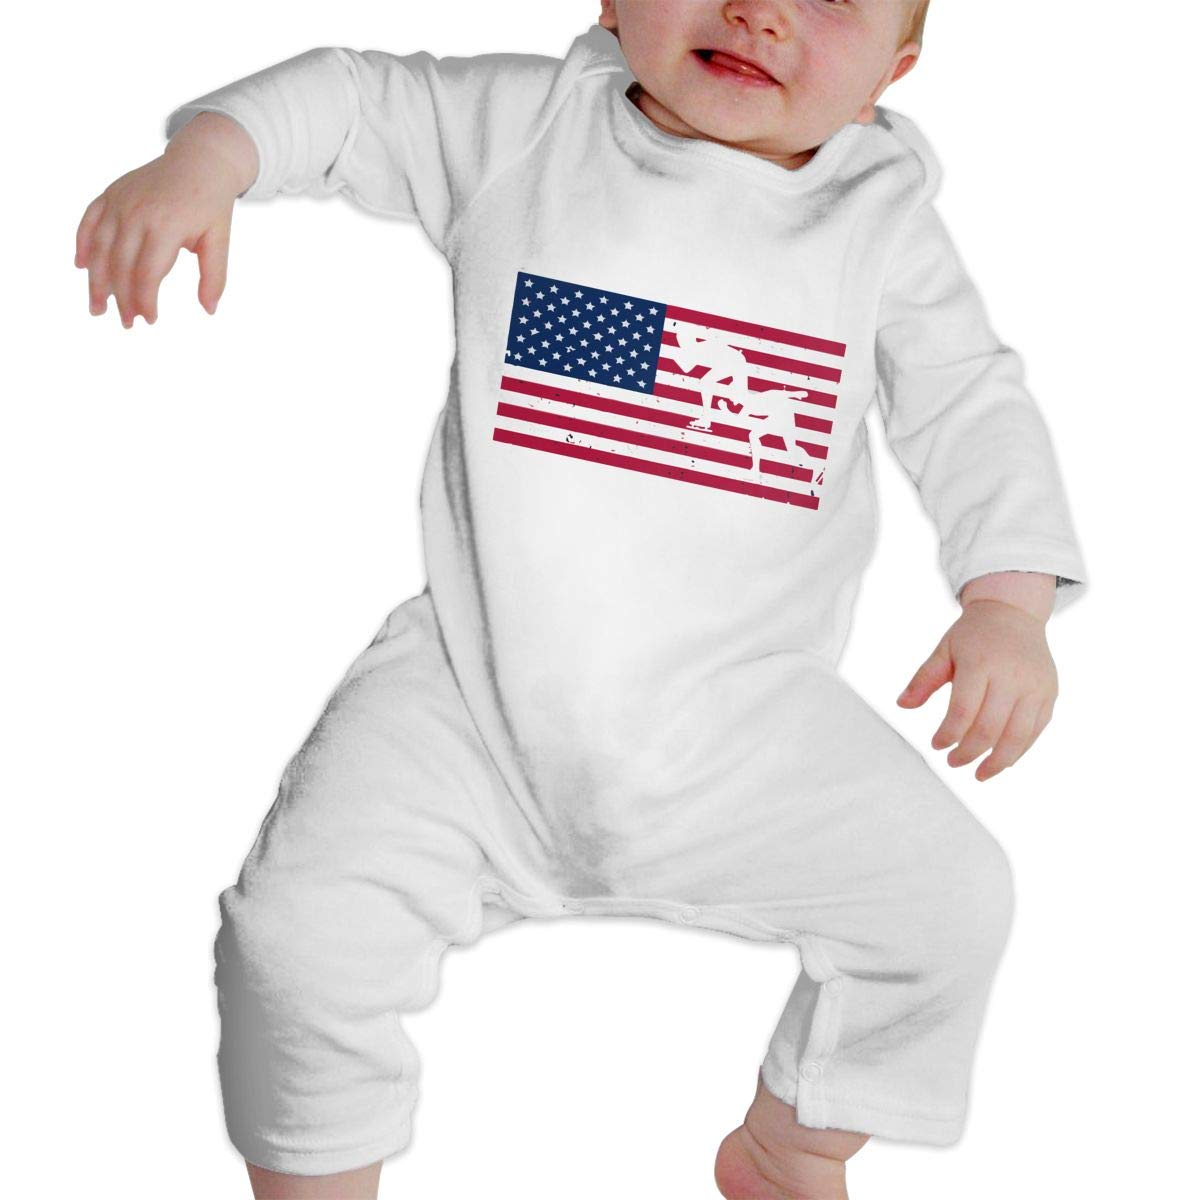 Q64 Newborn Round Collar American Speed Skating Long Sleeve Playsuit 100/% Cotton Suit 6-24 Months